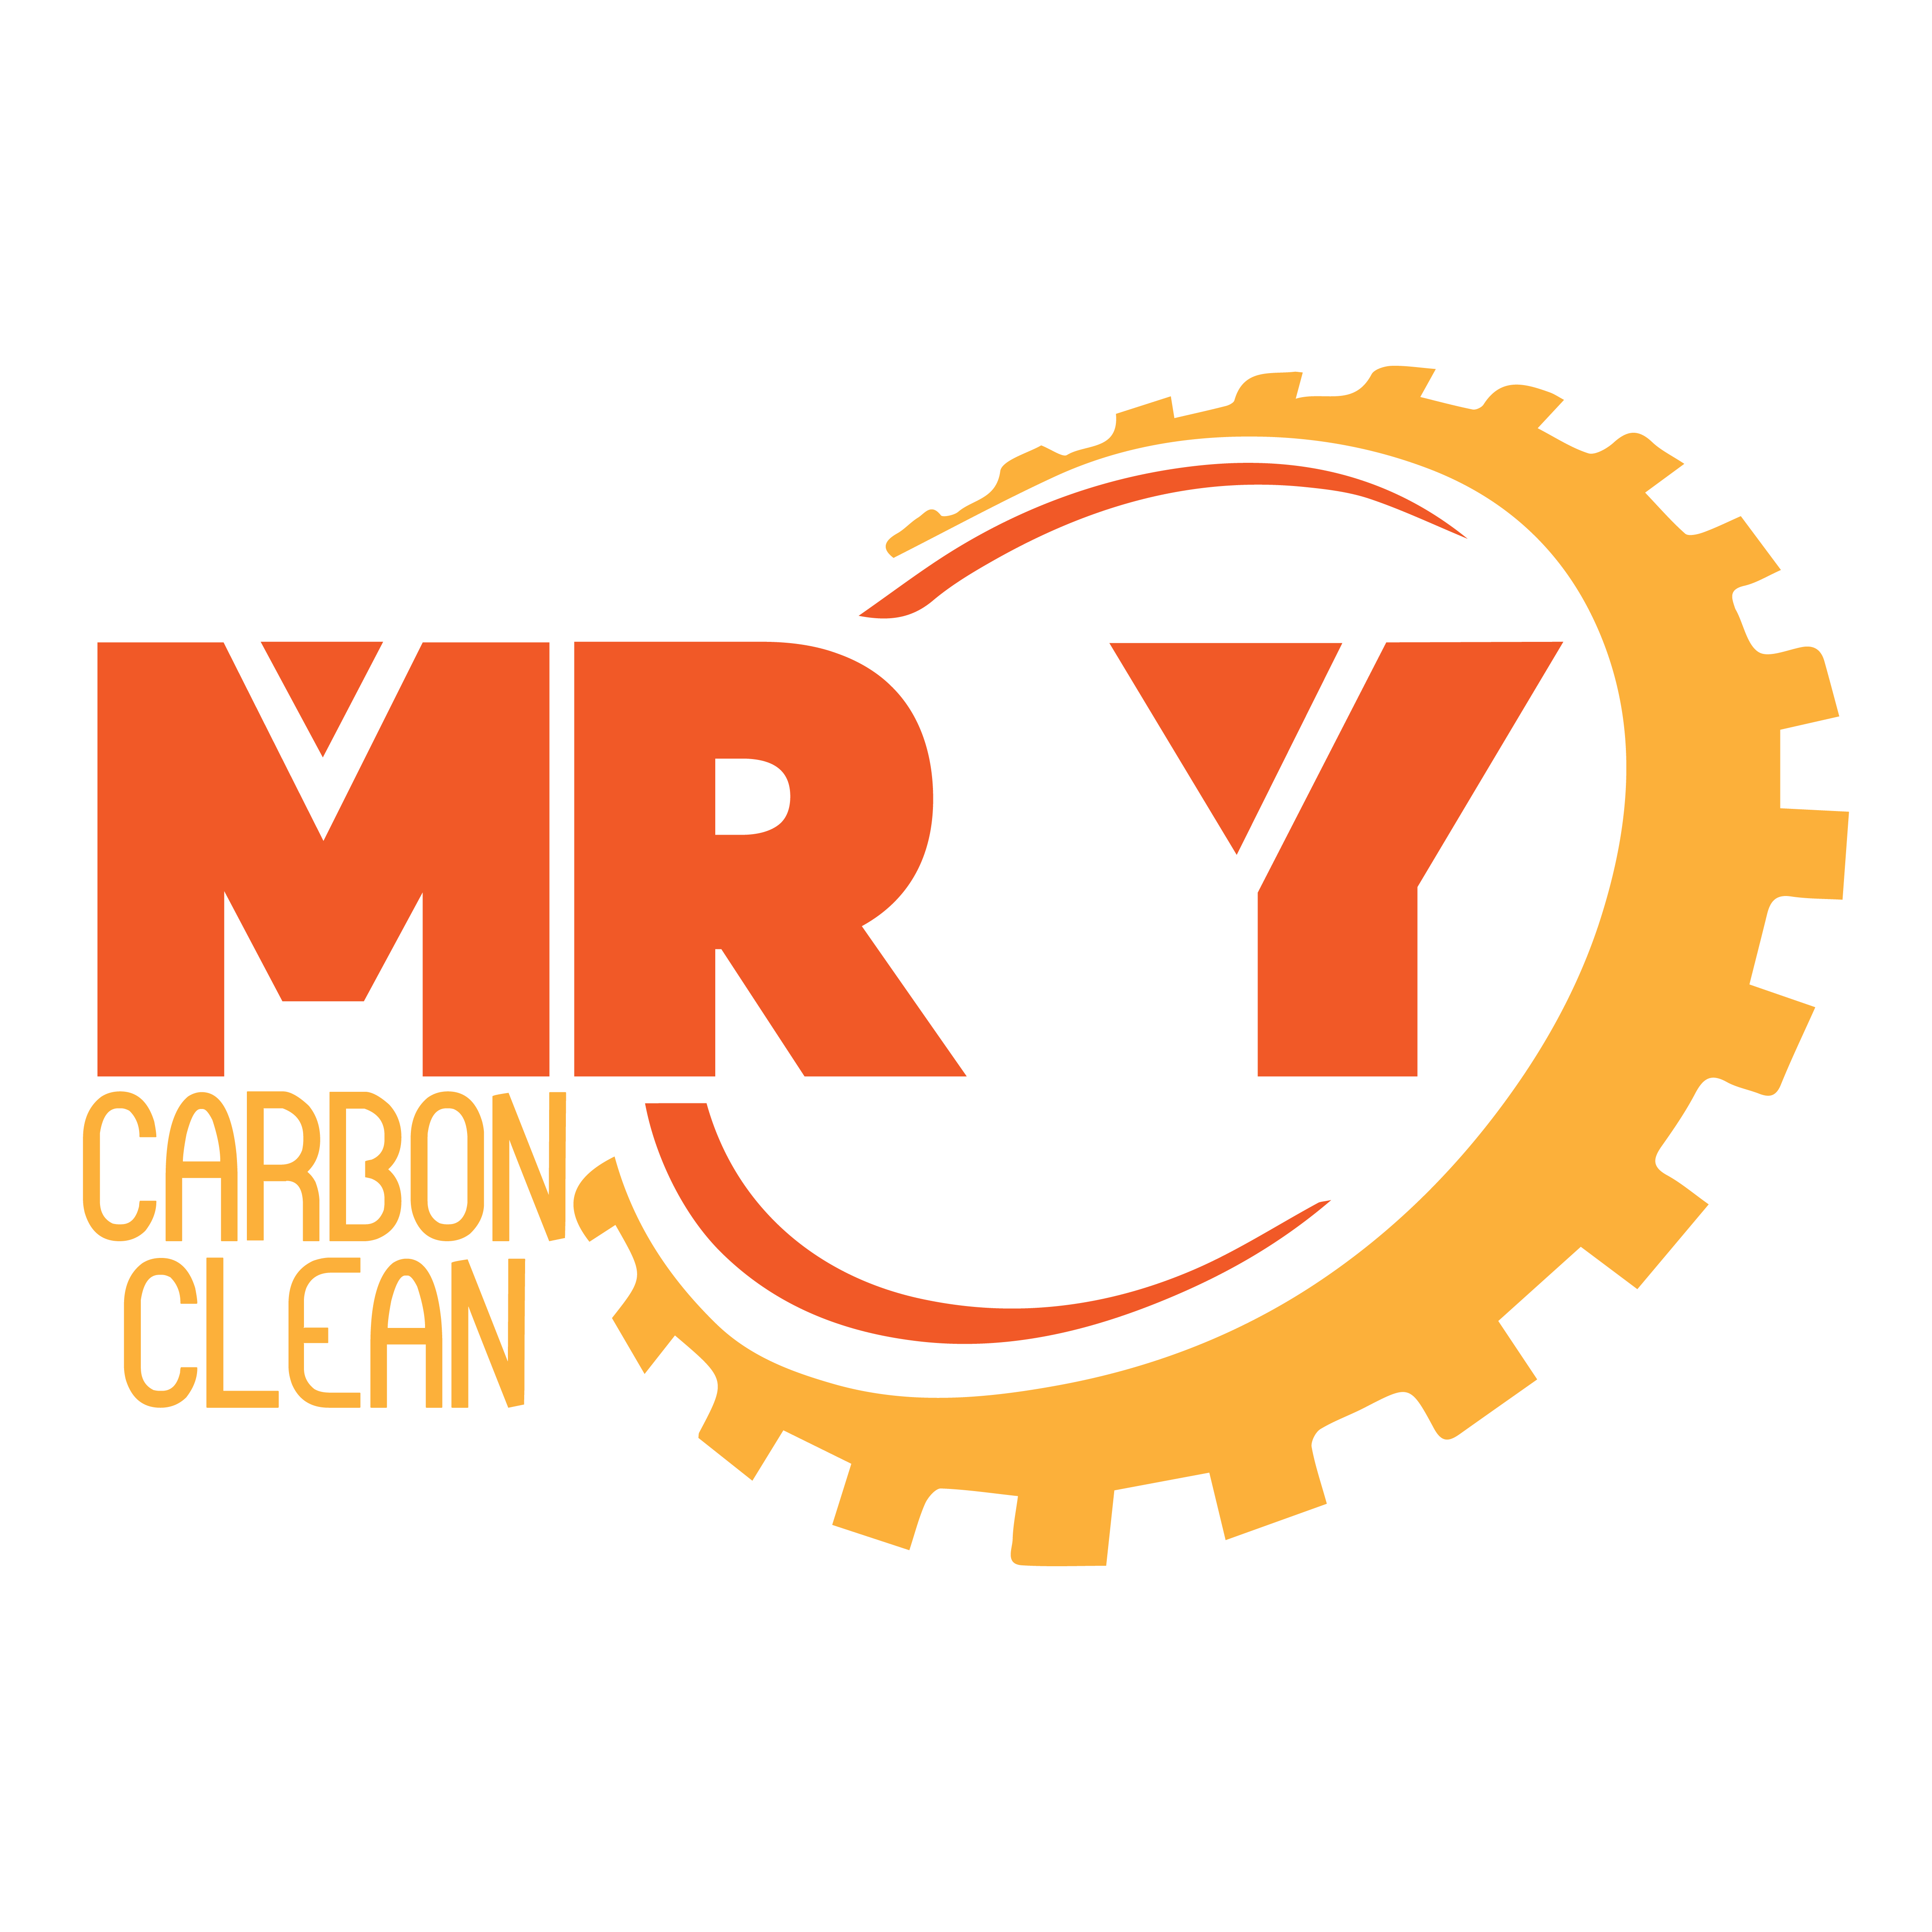 MRY UK Carbon Clean